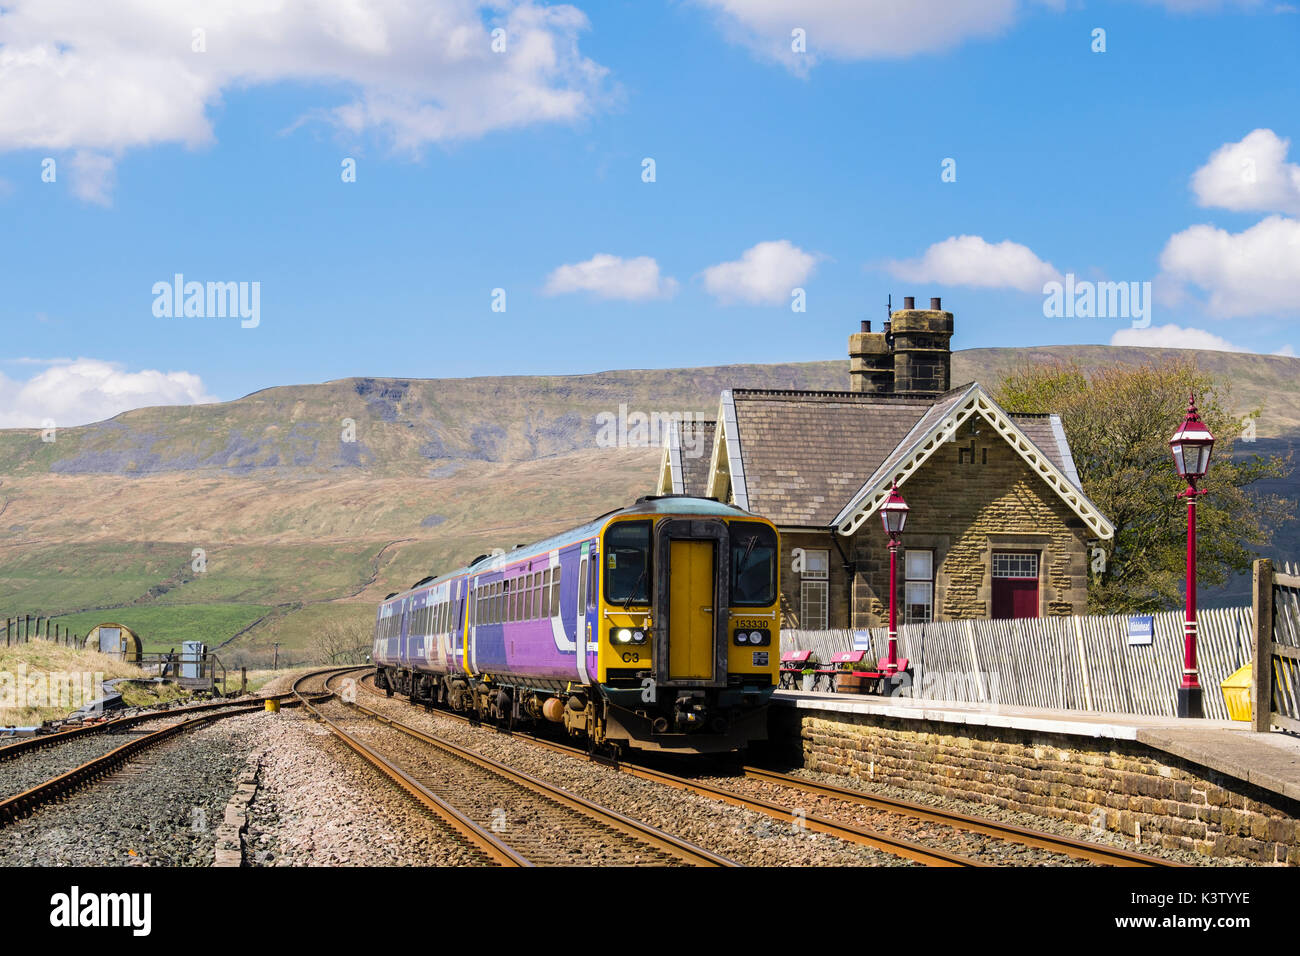 Passenger train stopped at Ribblehead station on Settle to Carlisle railway line. Yorkshire Dales National Park West Riding North Yorkshire England UK - Stock Image